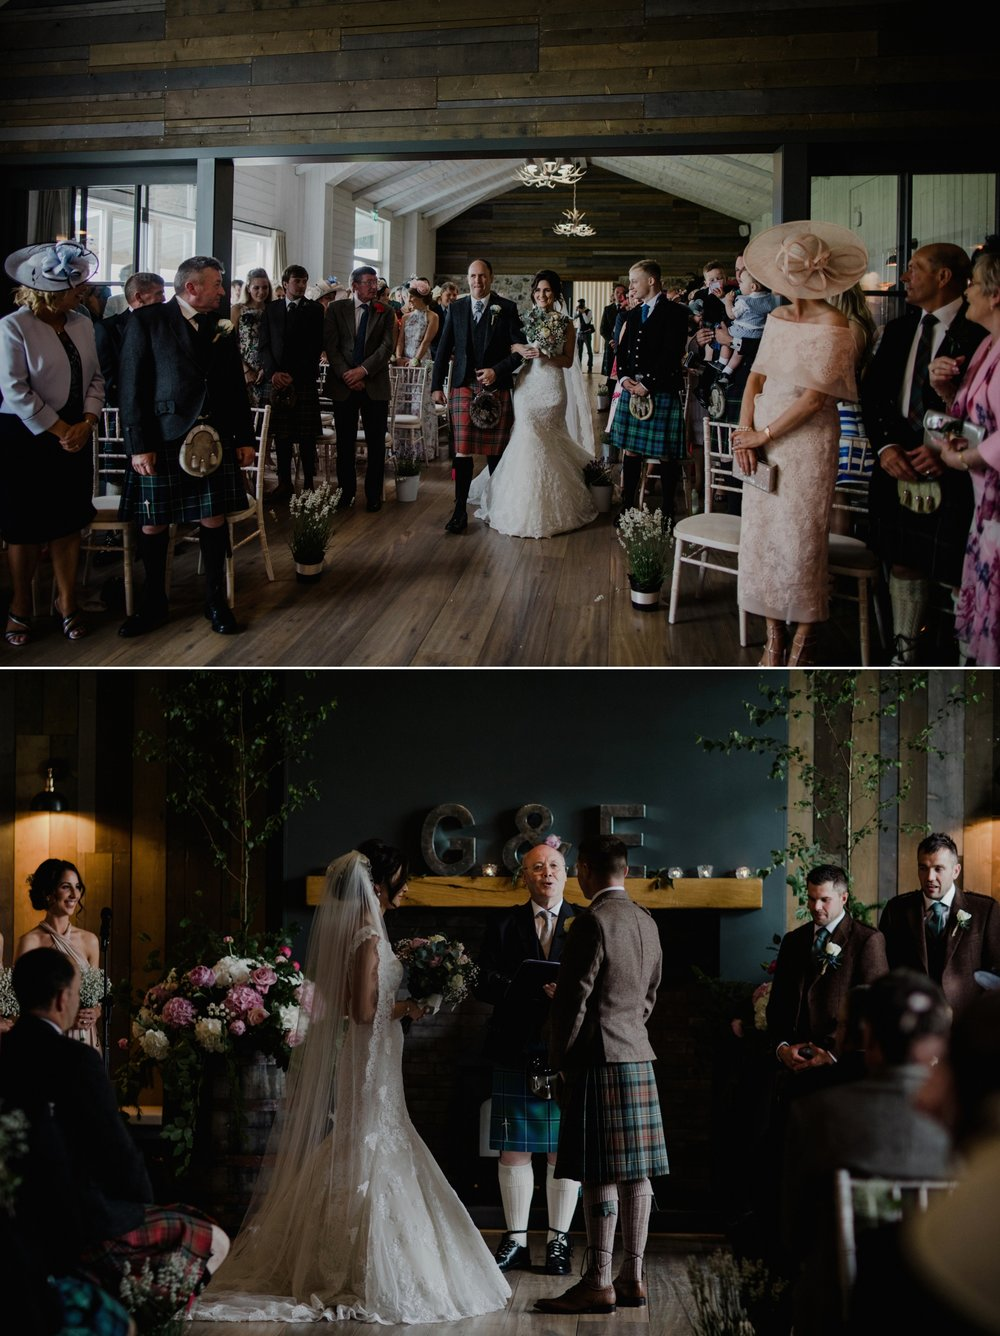 ELLIE_GARY_BARRA_CASTLE_WEDDING_ZOE_ALEXANDRA_PHOTOGRAPHY-0174.jpg